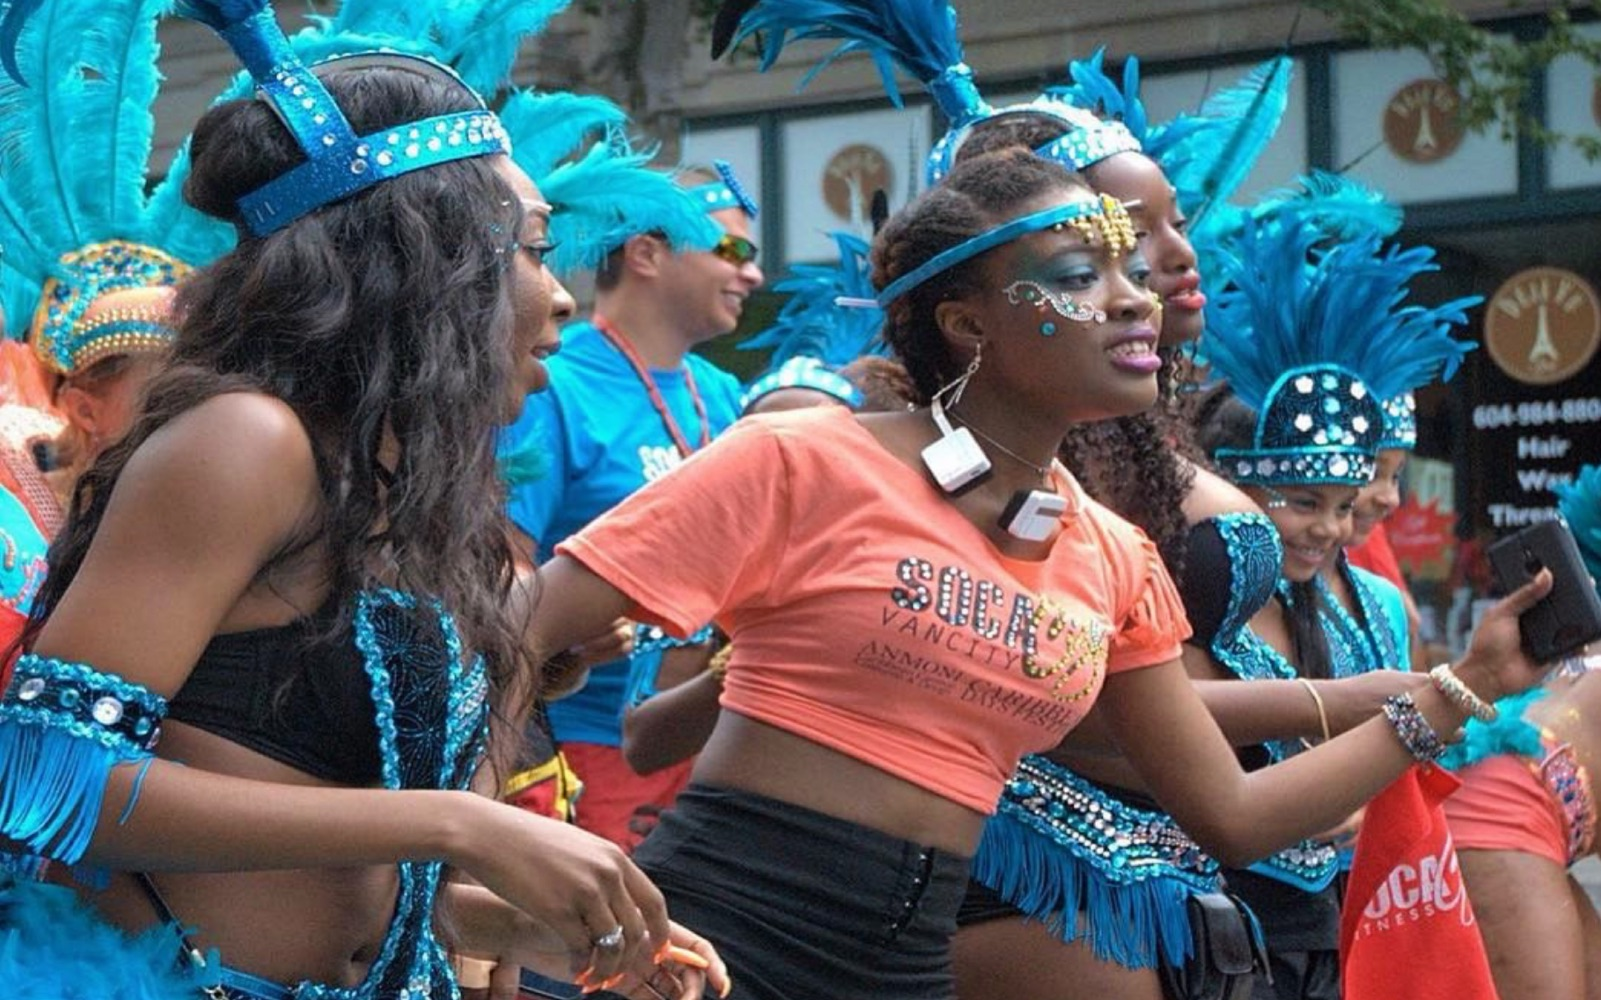 Dancers in the Caribbean Days parade, North Vancouver